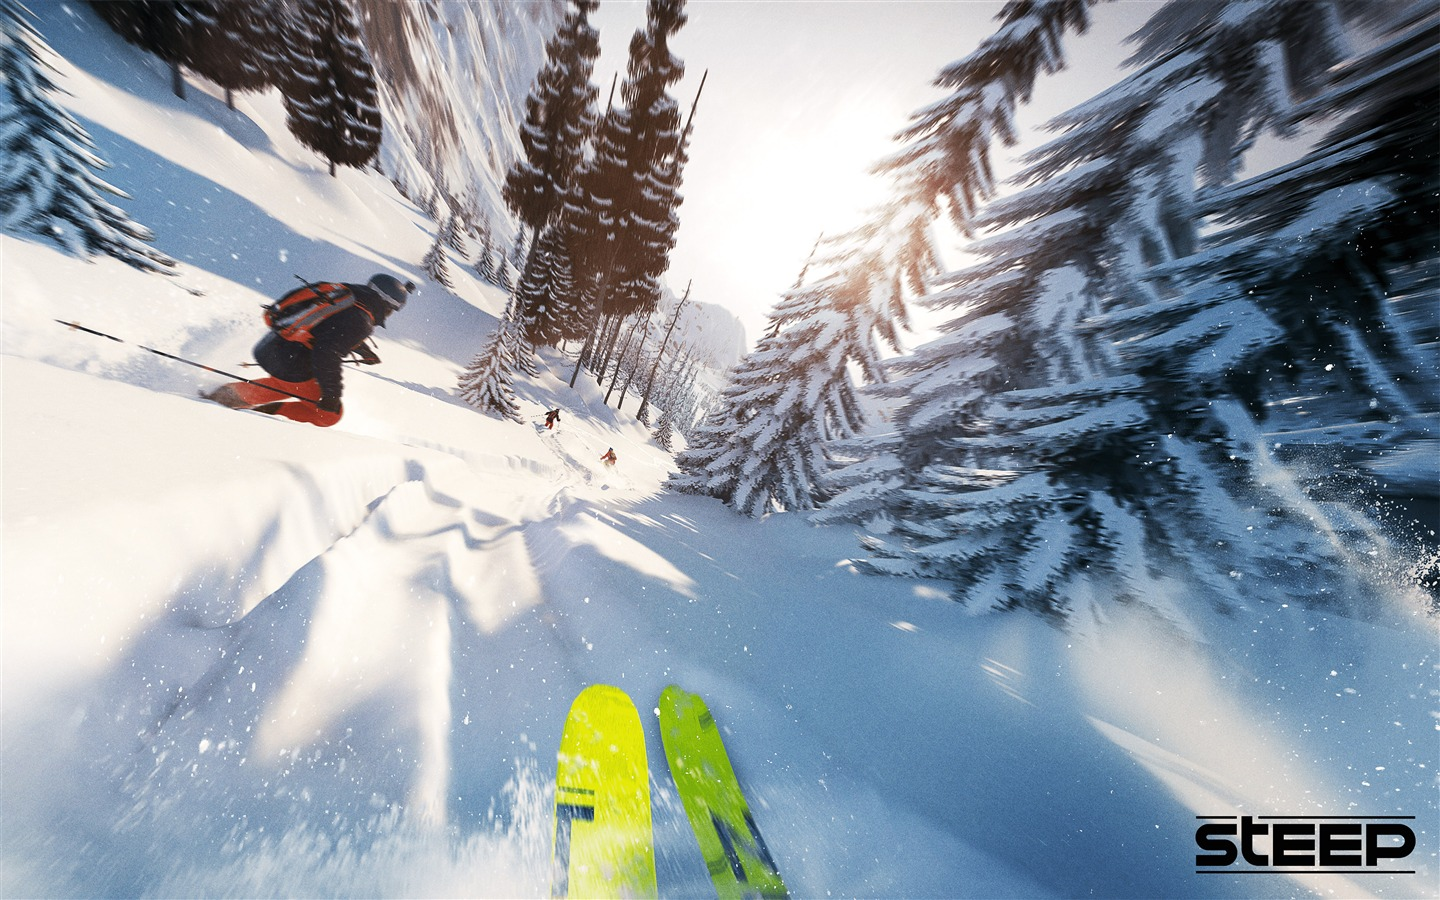 Ski competition Steep Game 4K - 1440x900 wallpaper download